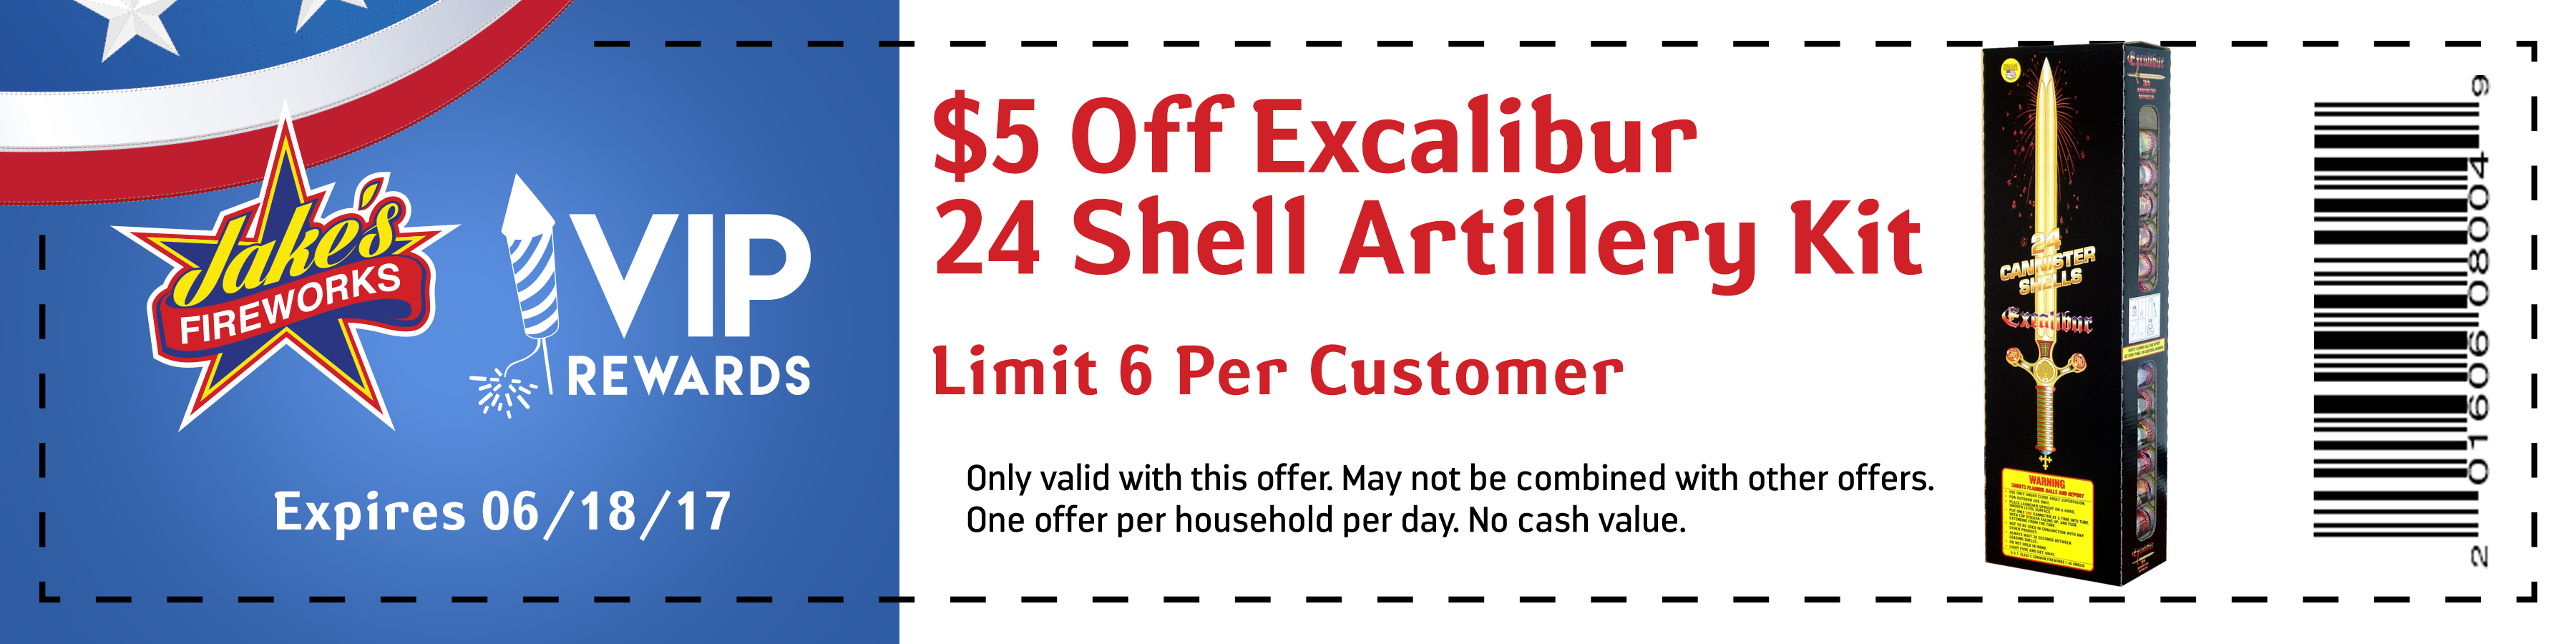 excalibur fireworks coupon